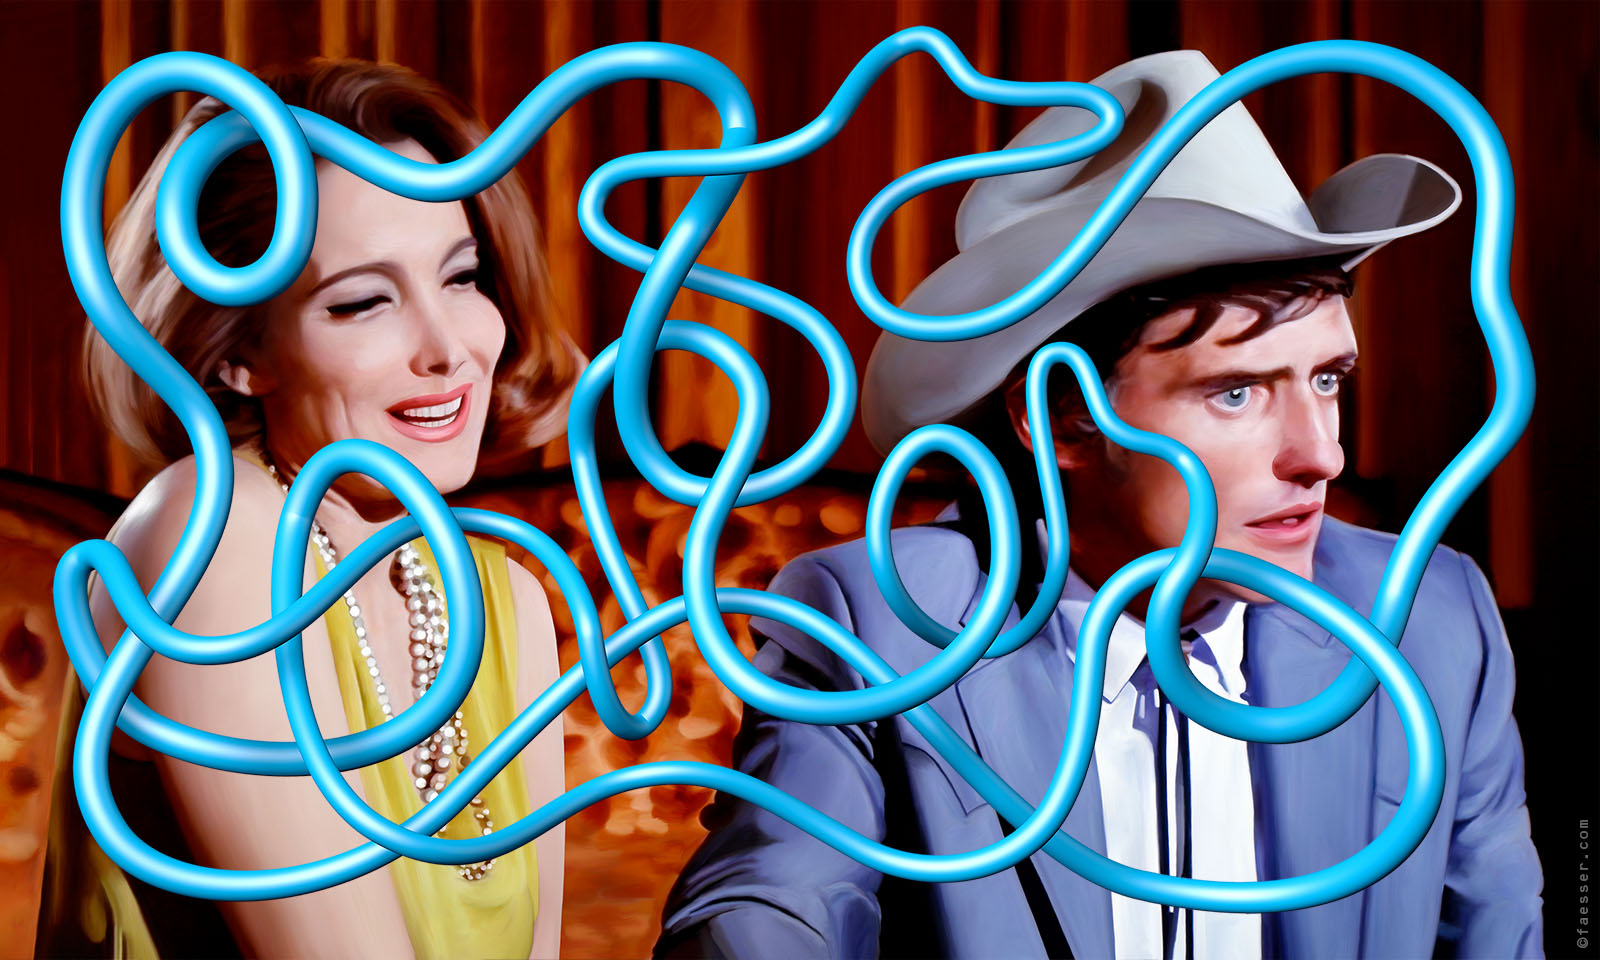 Blue endless tube line in front of Dennis Hopper and Julie Adams; artist Roland Faesser, sculptor and painter 2019